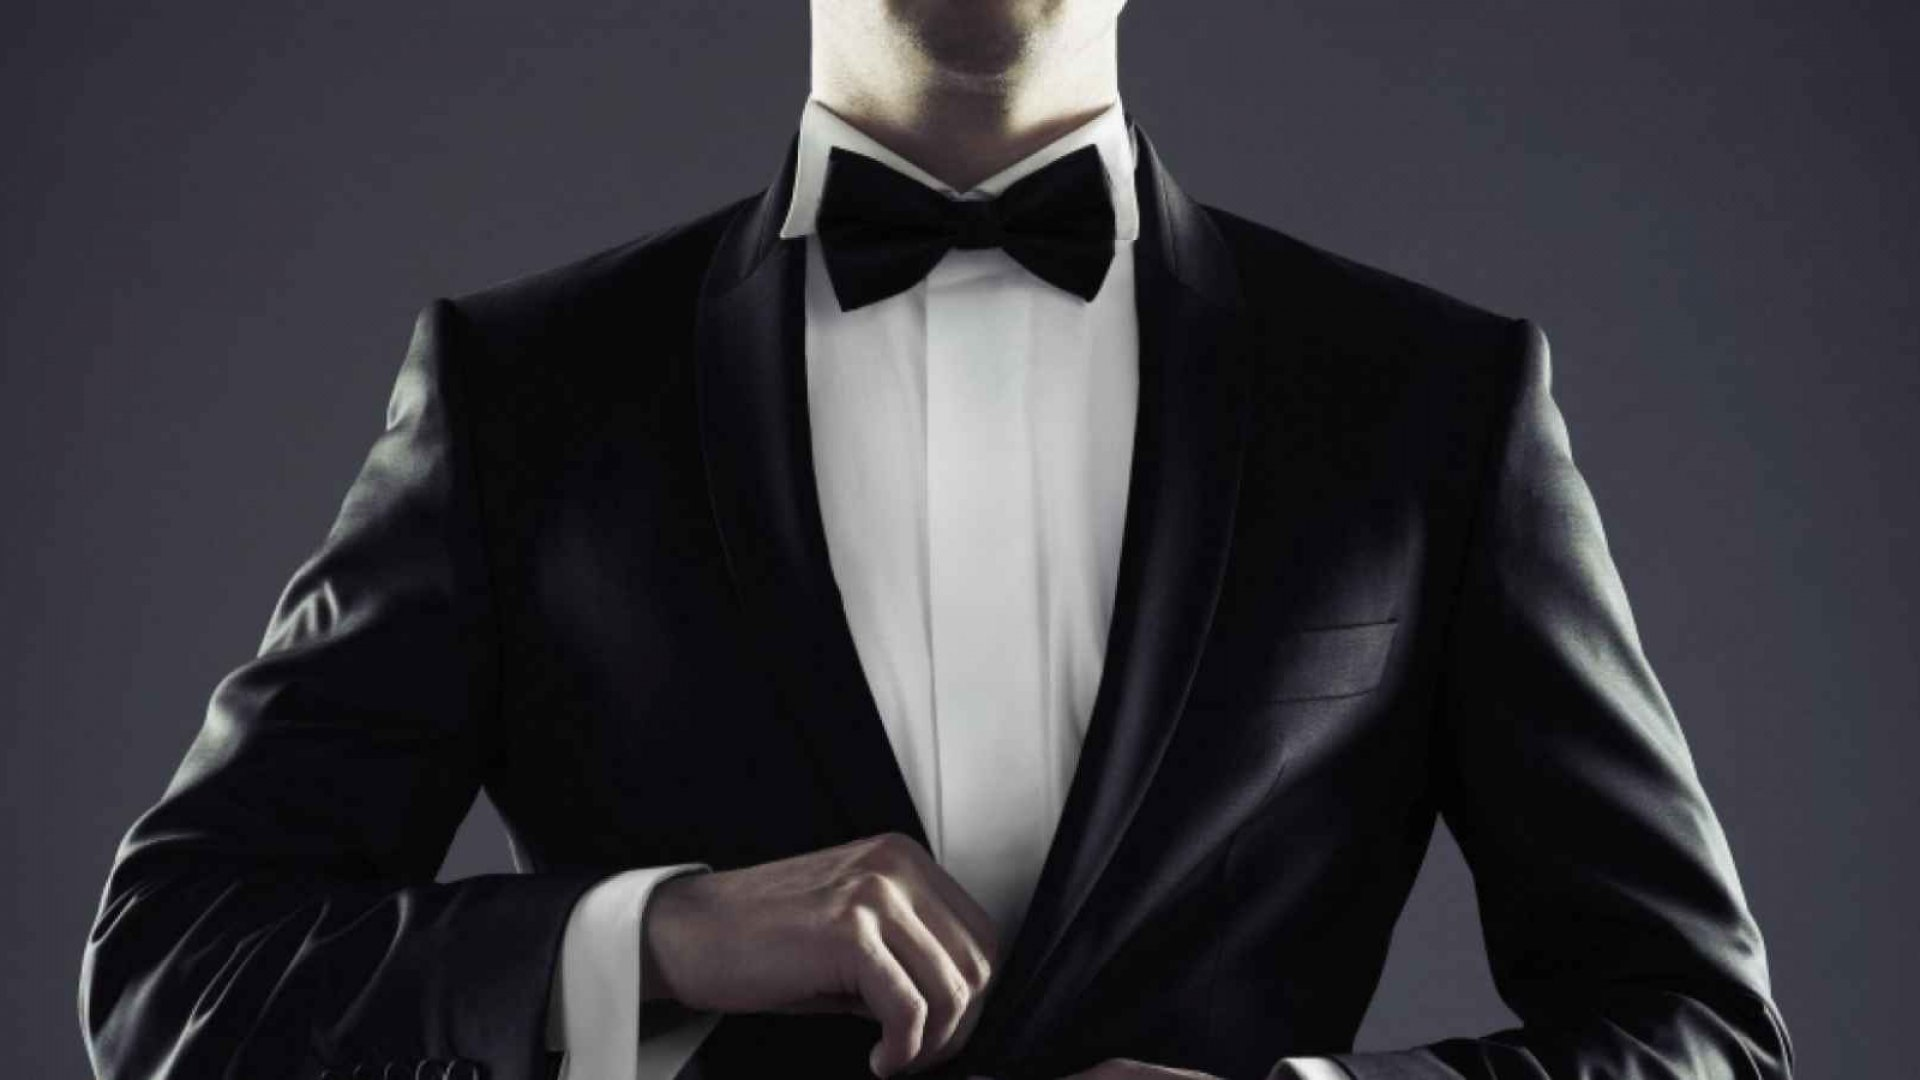 4 Reasons Why a Dress Code Can Supercharge Your Business